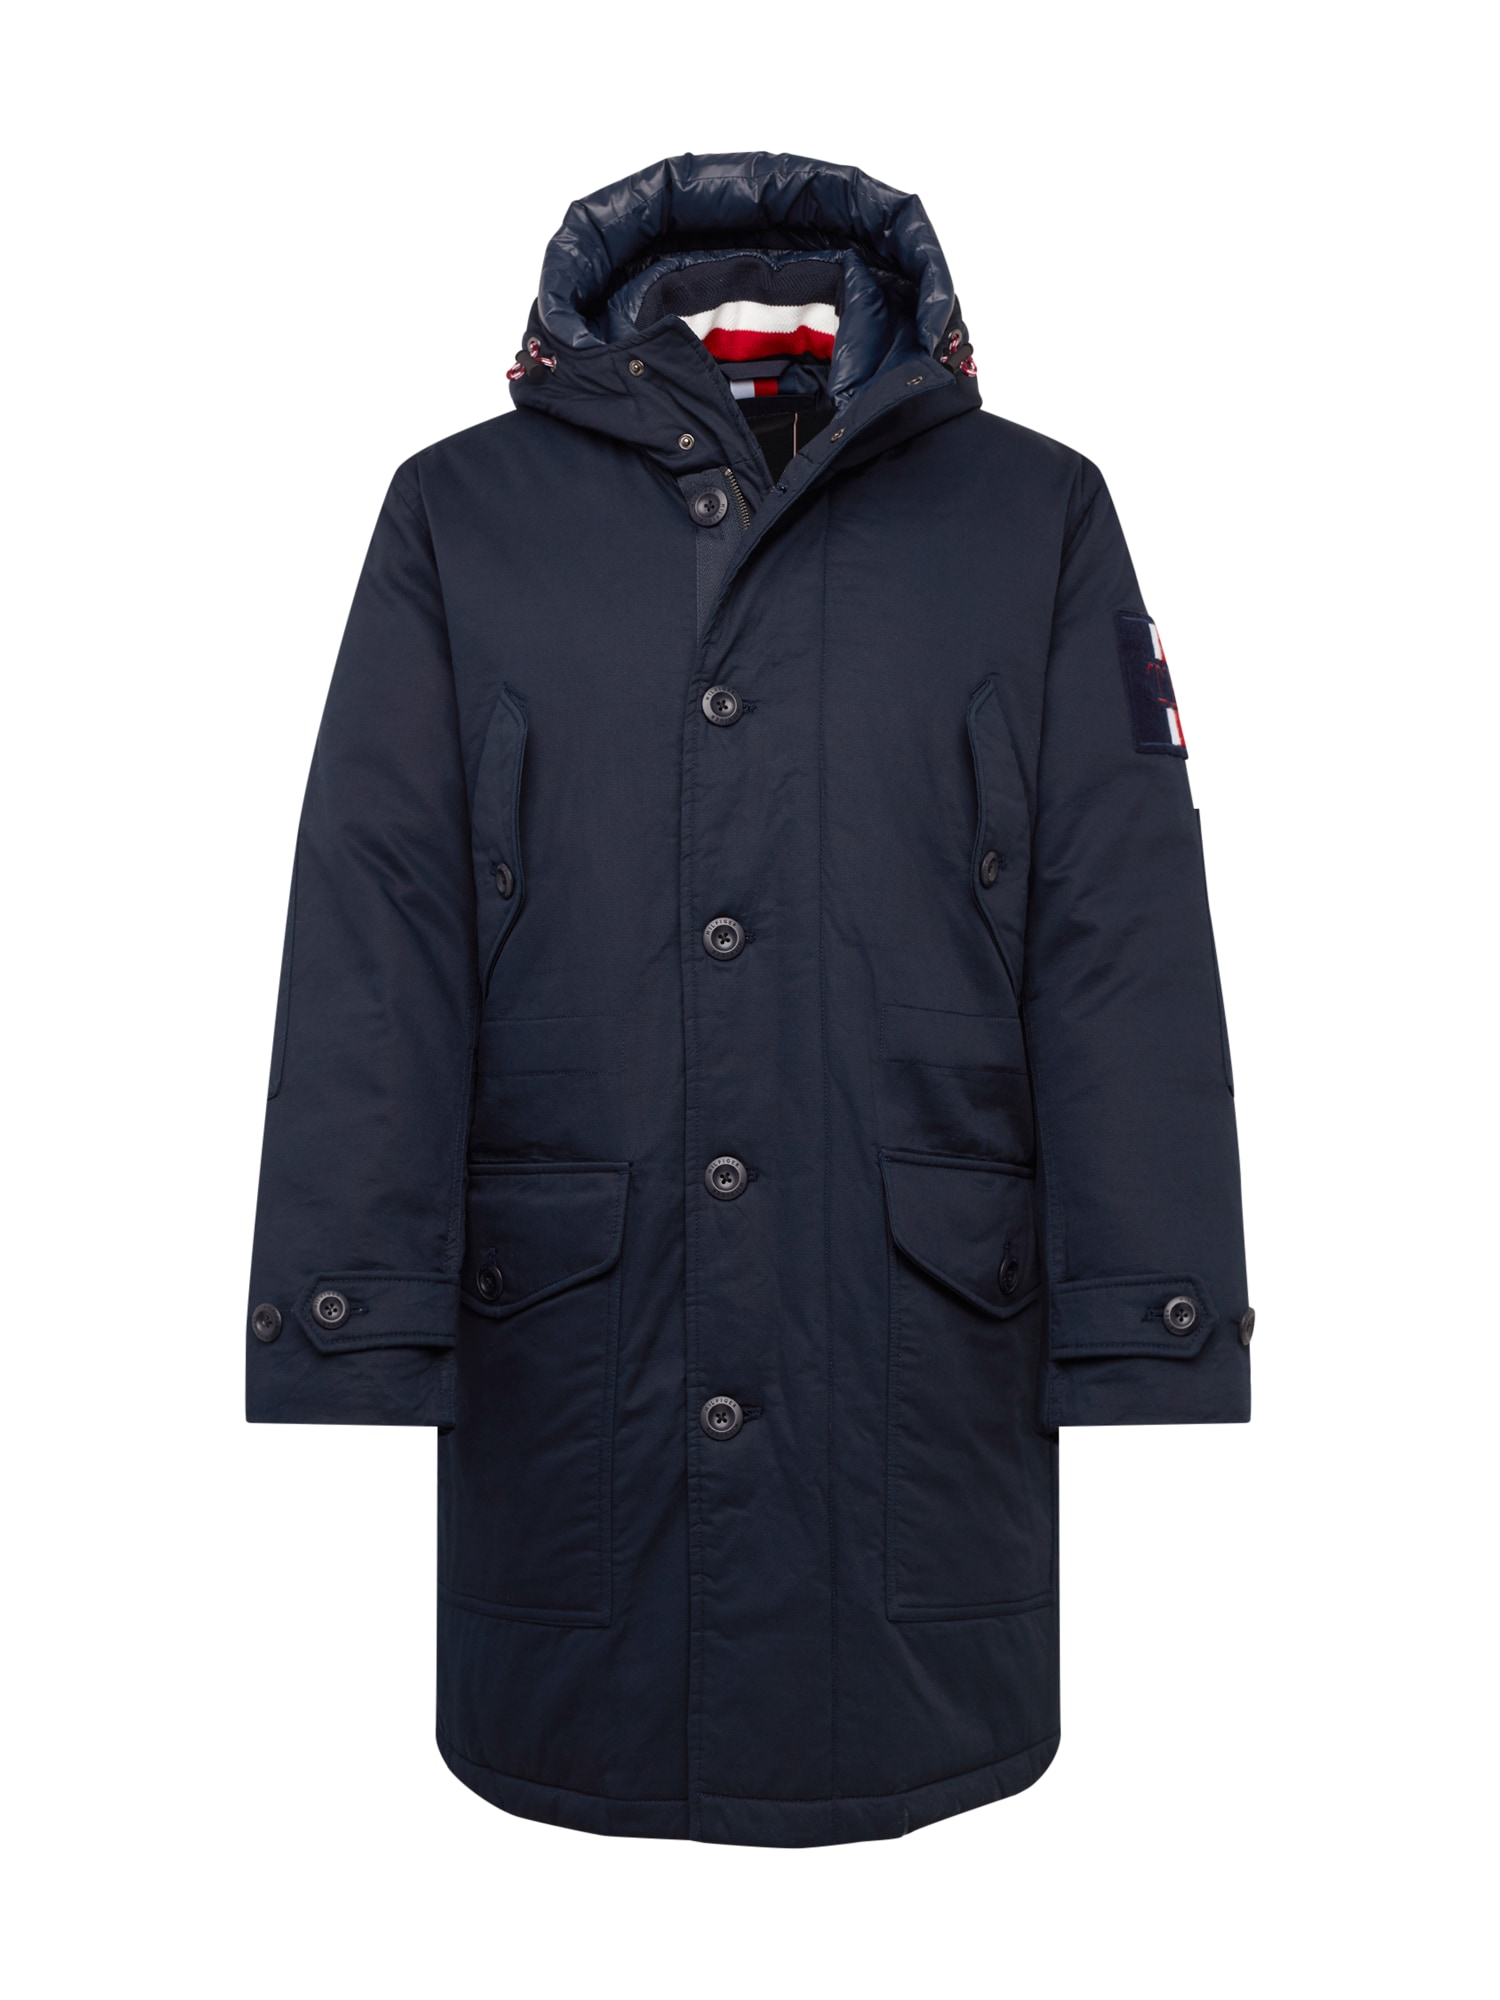 TOMMY HILFIGER Zimná parka 'TH MONOGRAM COTTON HOODED PARKA'  tmavomodrá